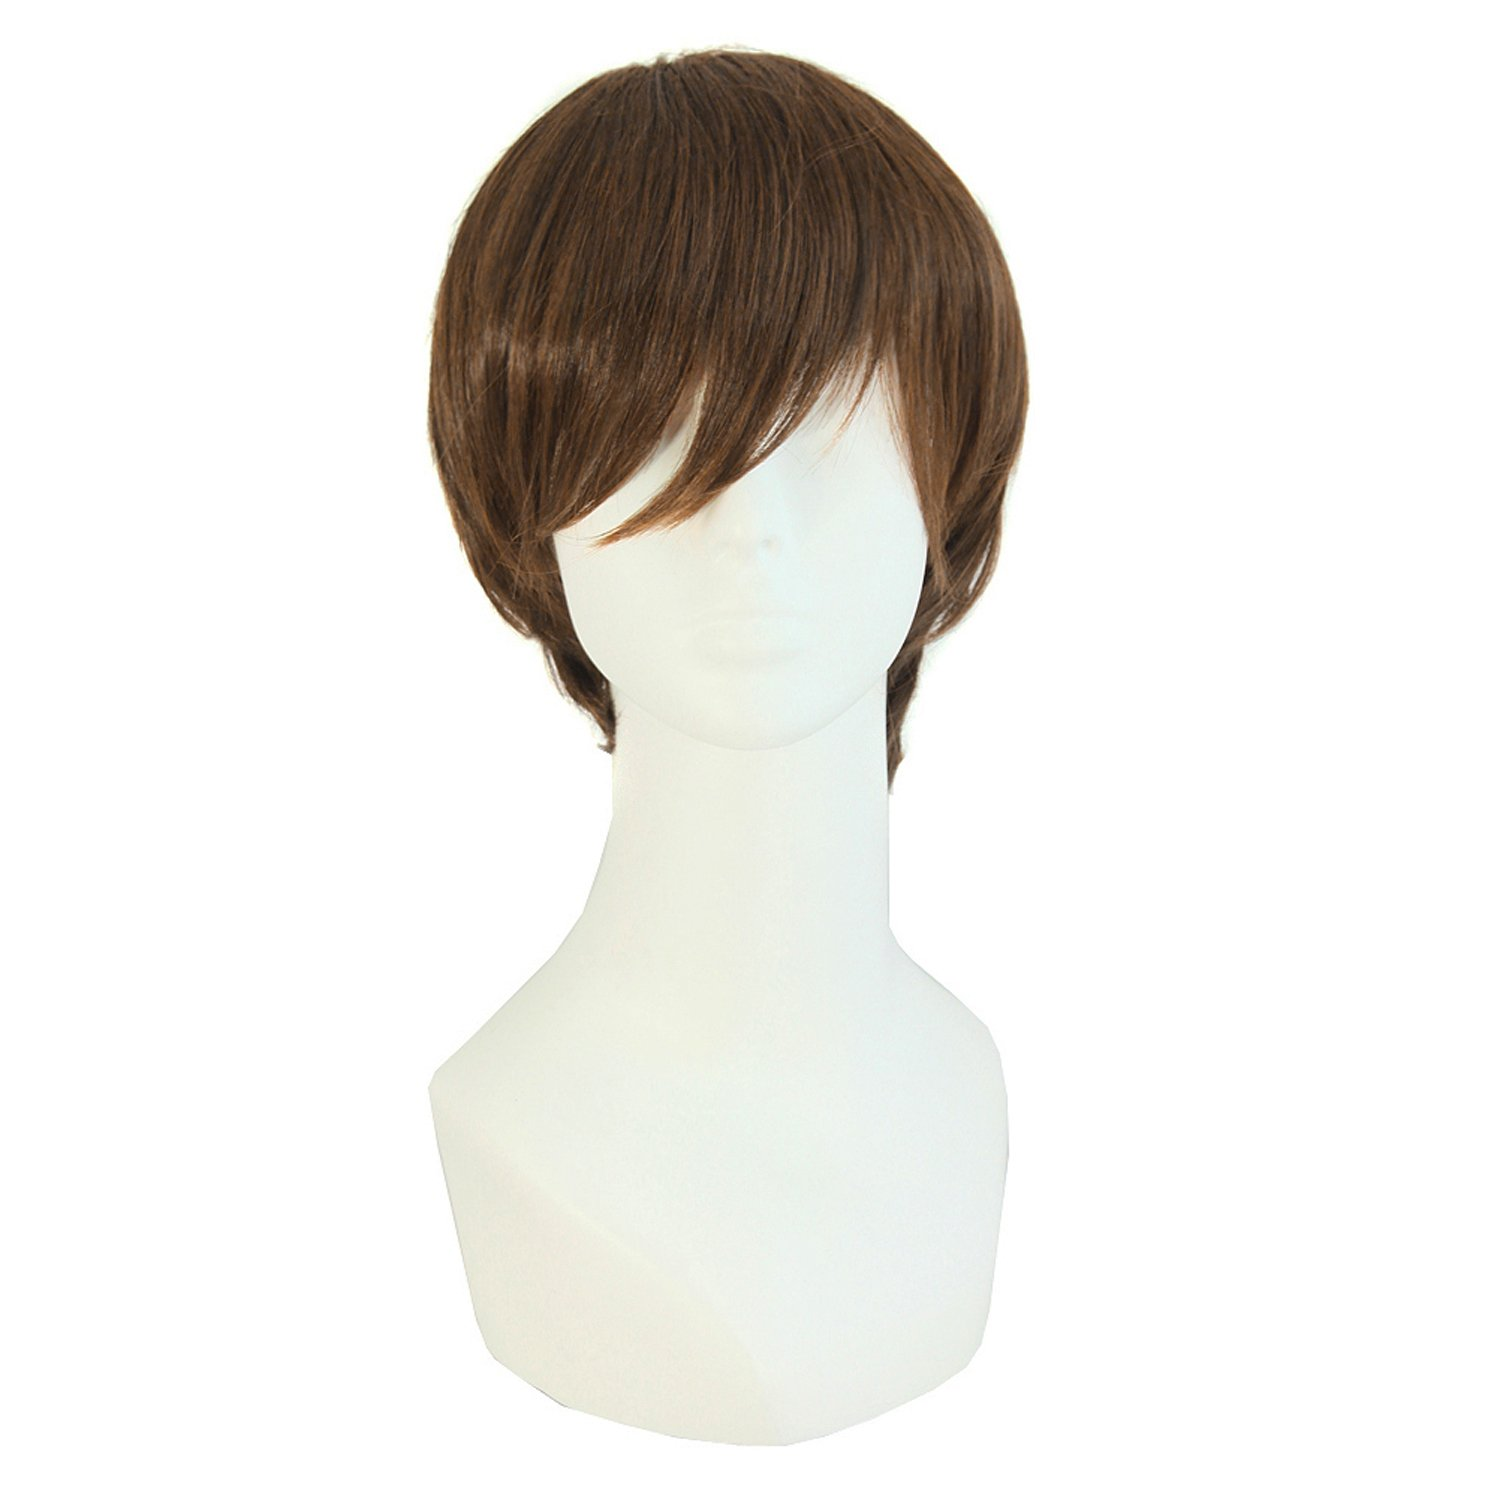 MapofBeauty Fashion Men's Short Straight Wig (Brown) by MapofBeauty